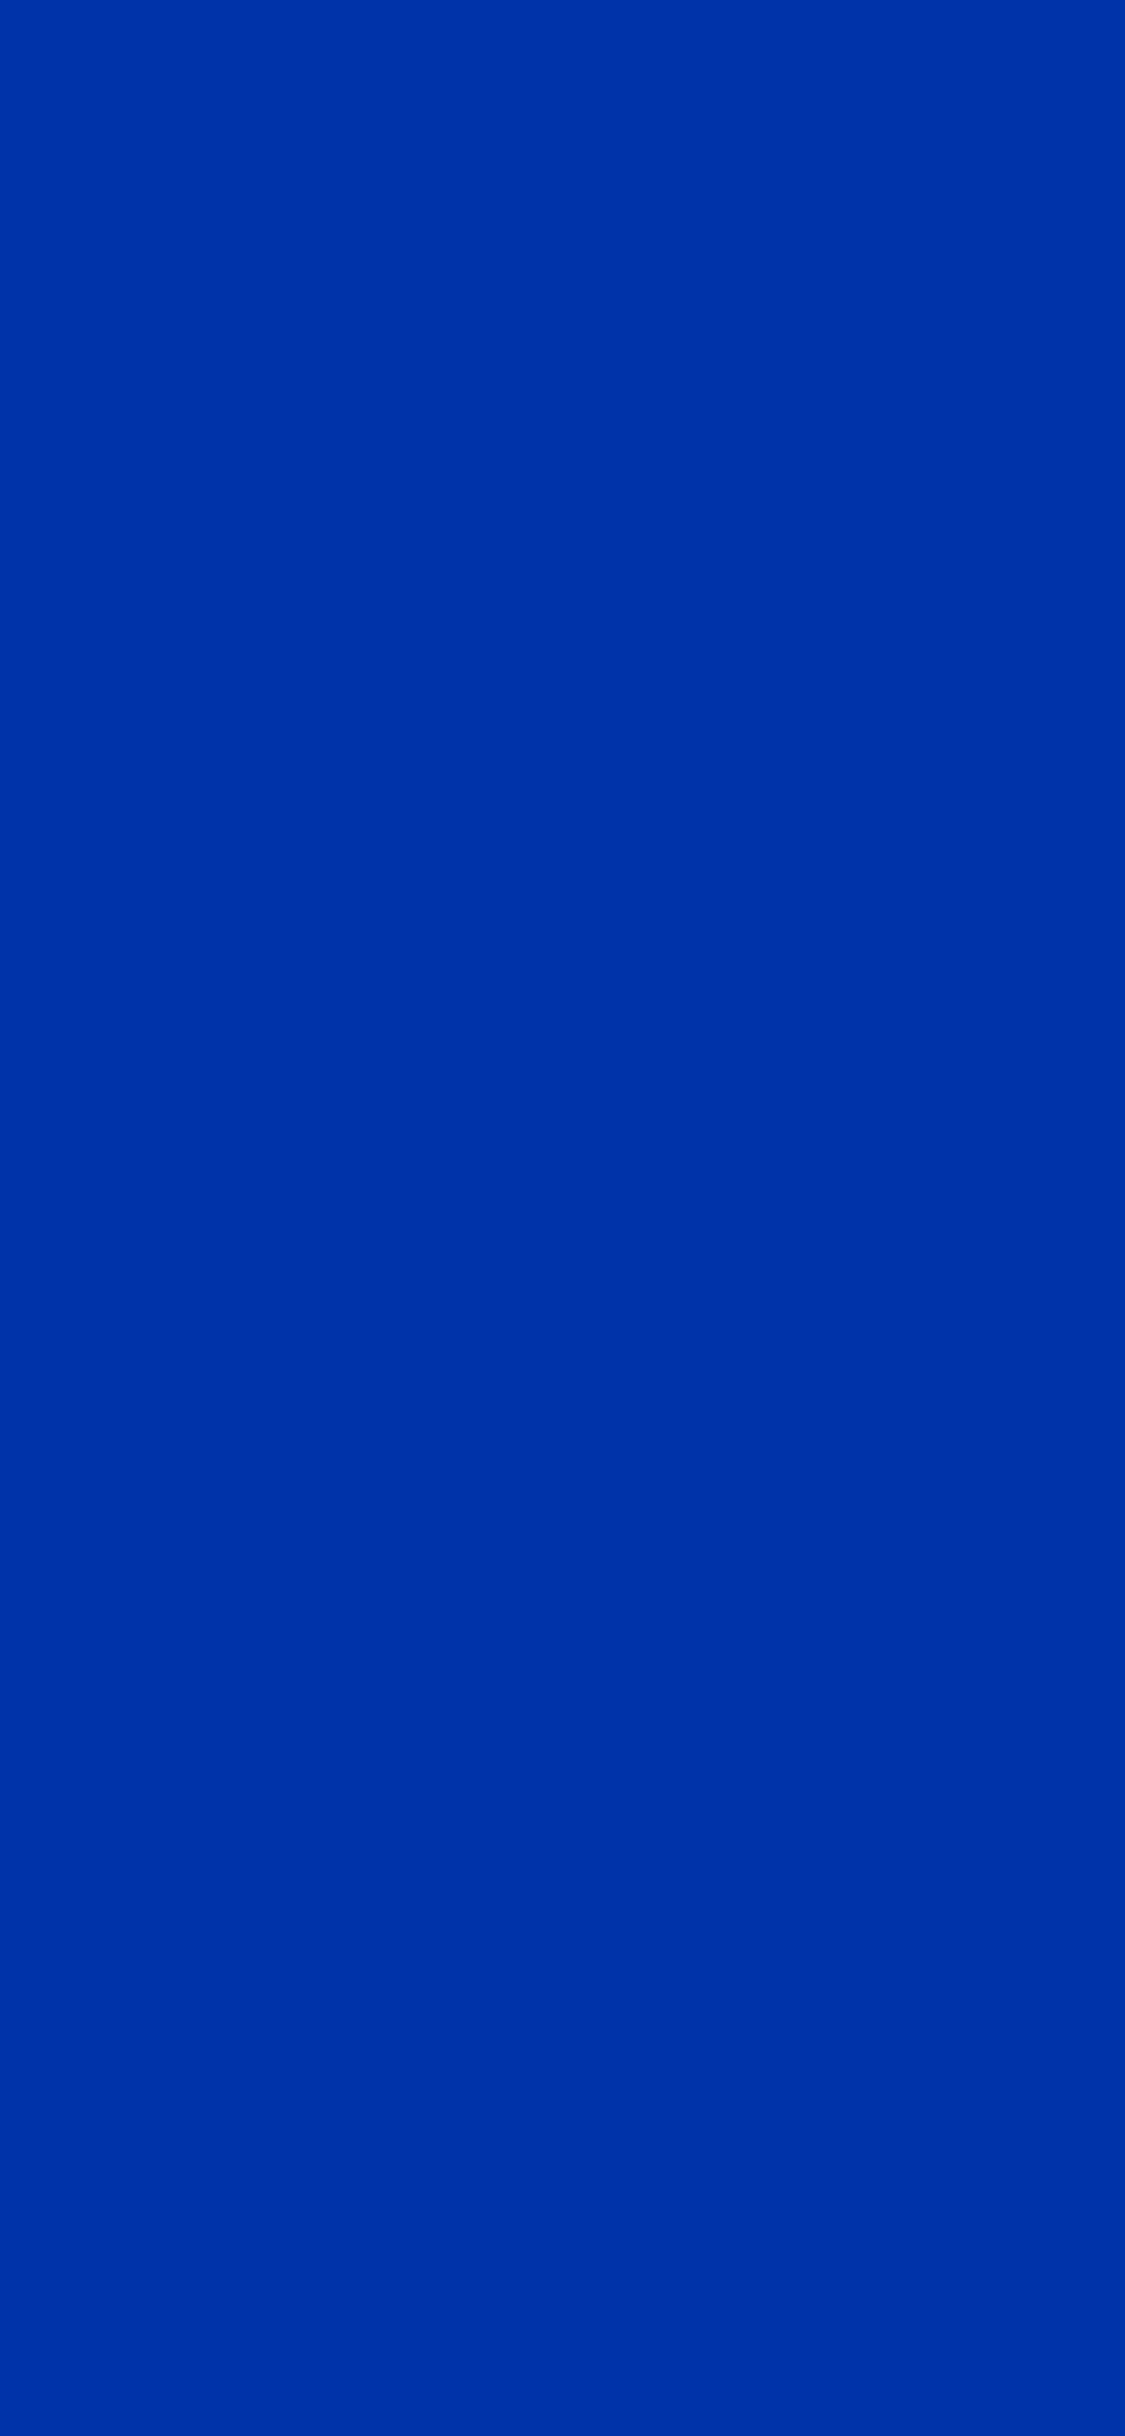 1125x2436 UA Blue Solid Color Background